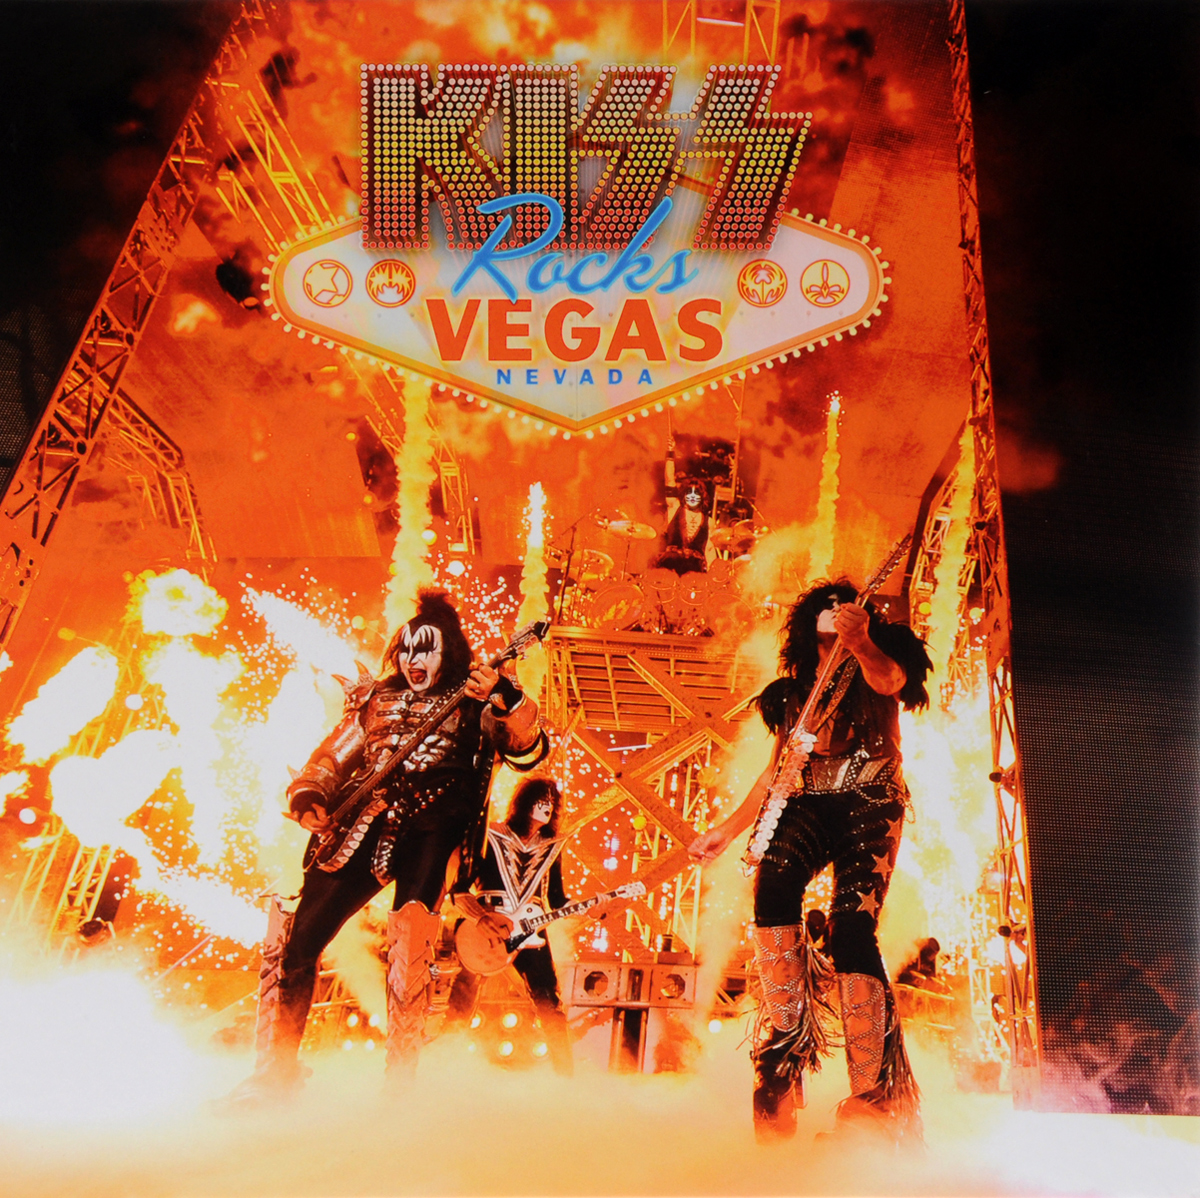 Kiss Kiss. Rocks Vegas (2 CD + DVD + Blu-Ray) lucky family digital sports watch red led time and date display